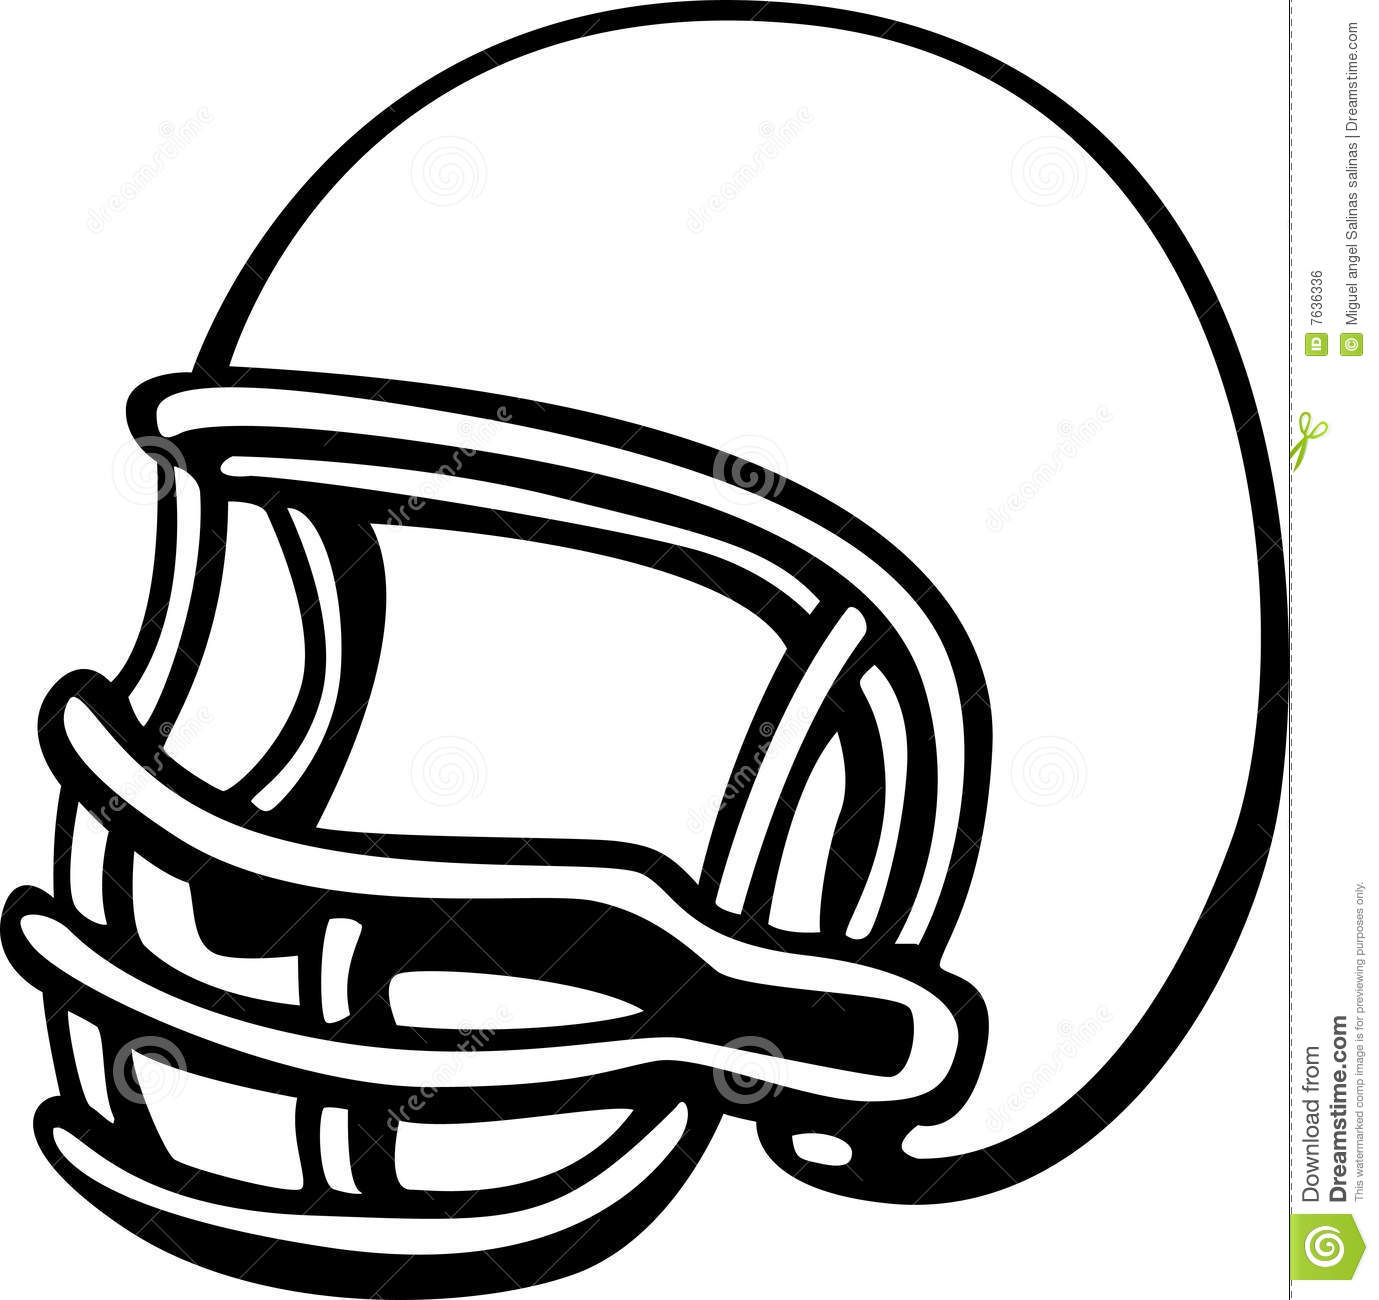 football helmet clip art front clipart panda free clipart images rh clipartpanda com clipart football helmet outline clip art football helmet black and white